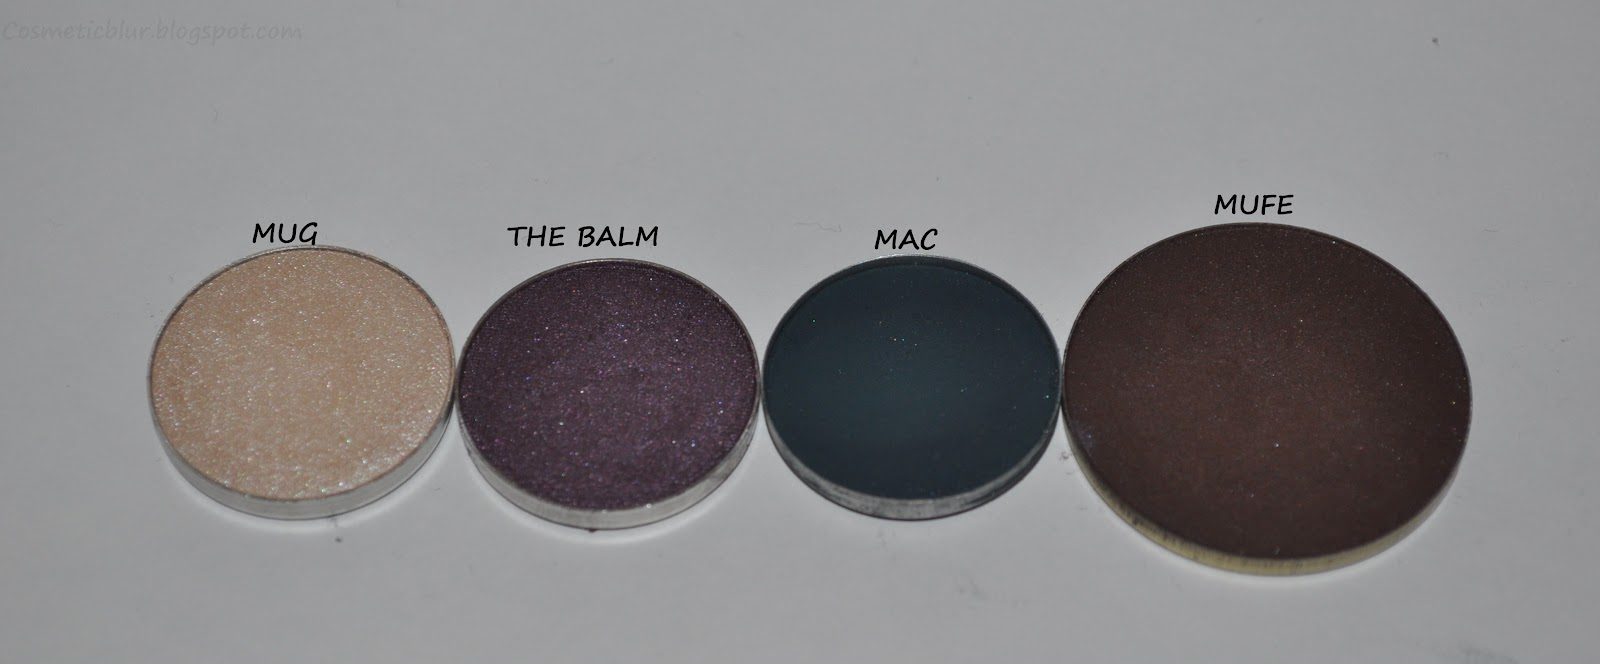 Own A Mac Palette Or Even An E L F One These Would Fit In Perfectly From Left